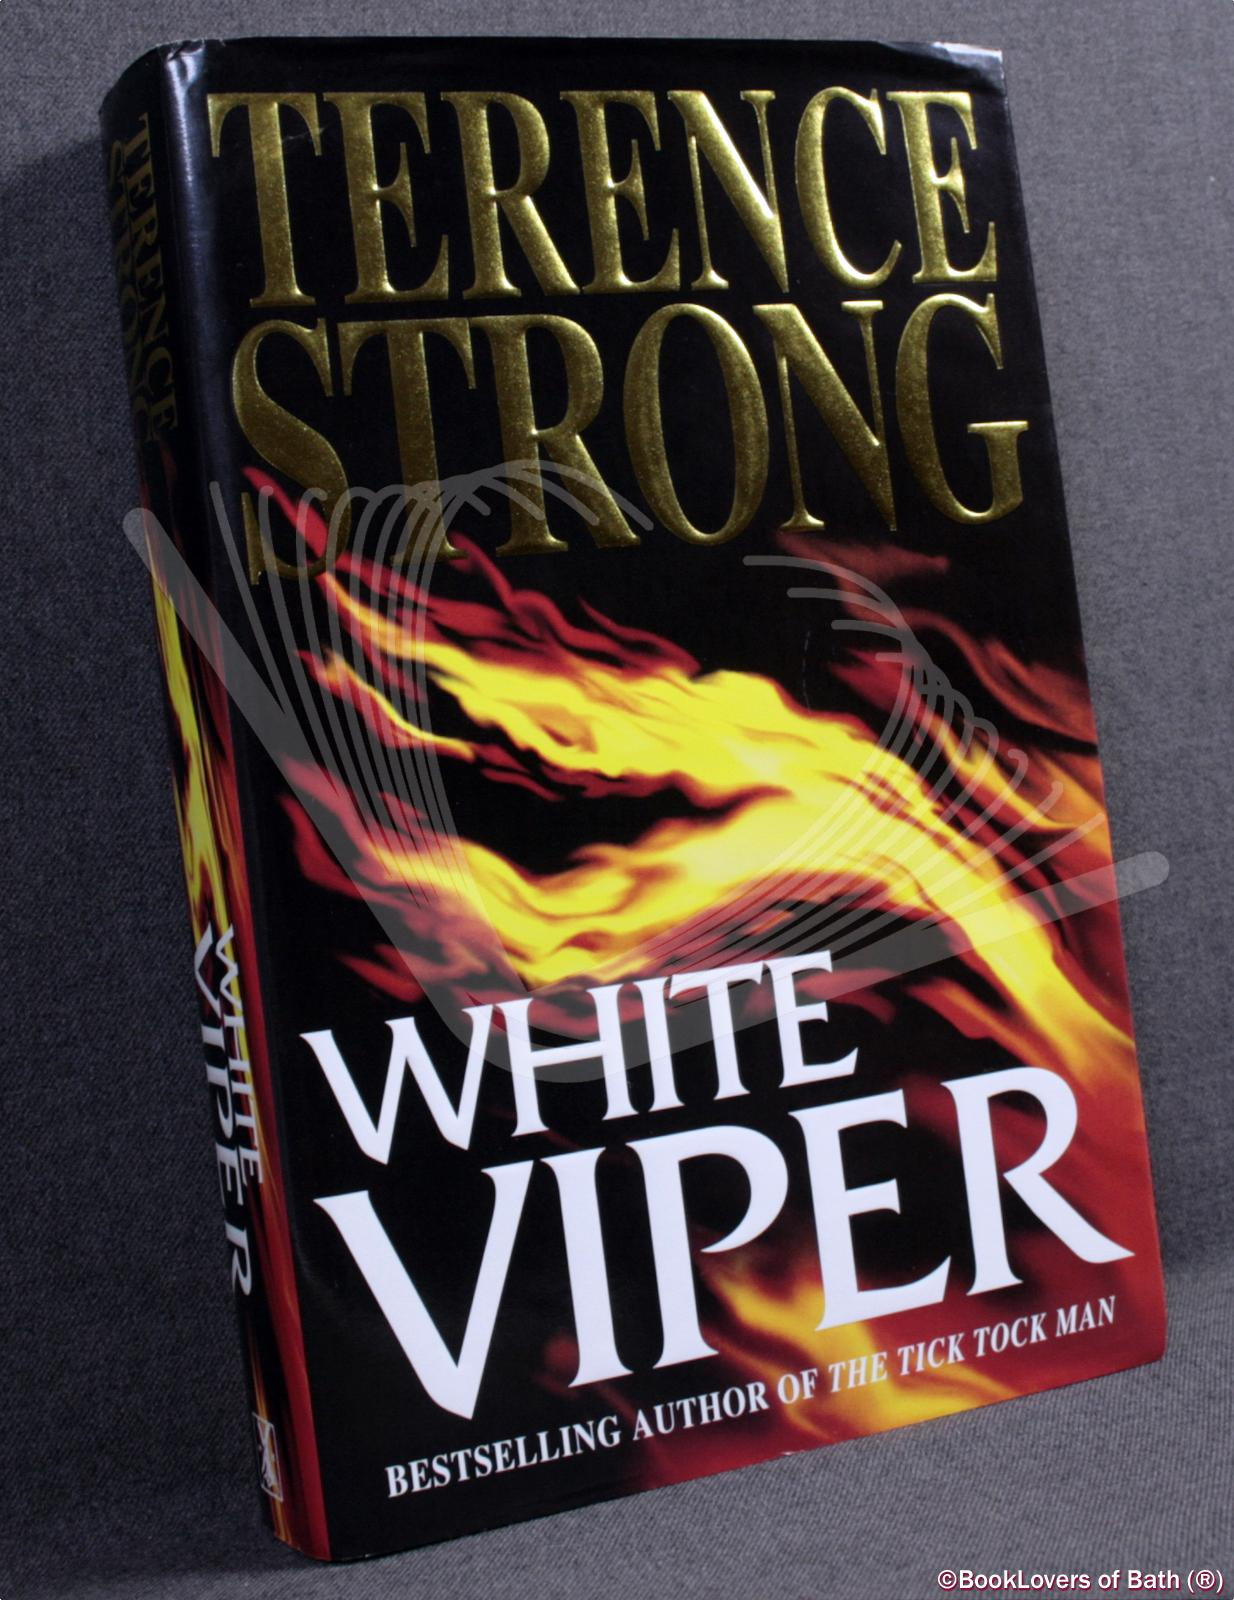 White Viper - Terence Strong